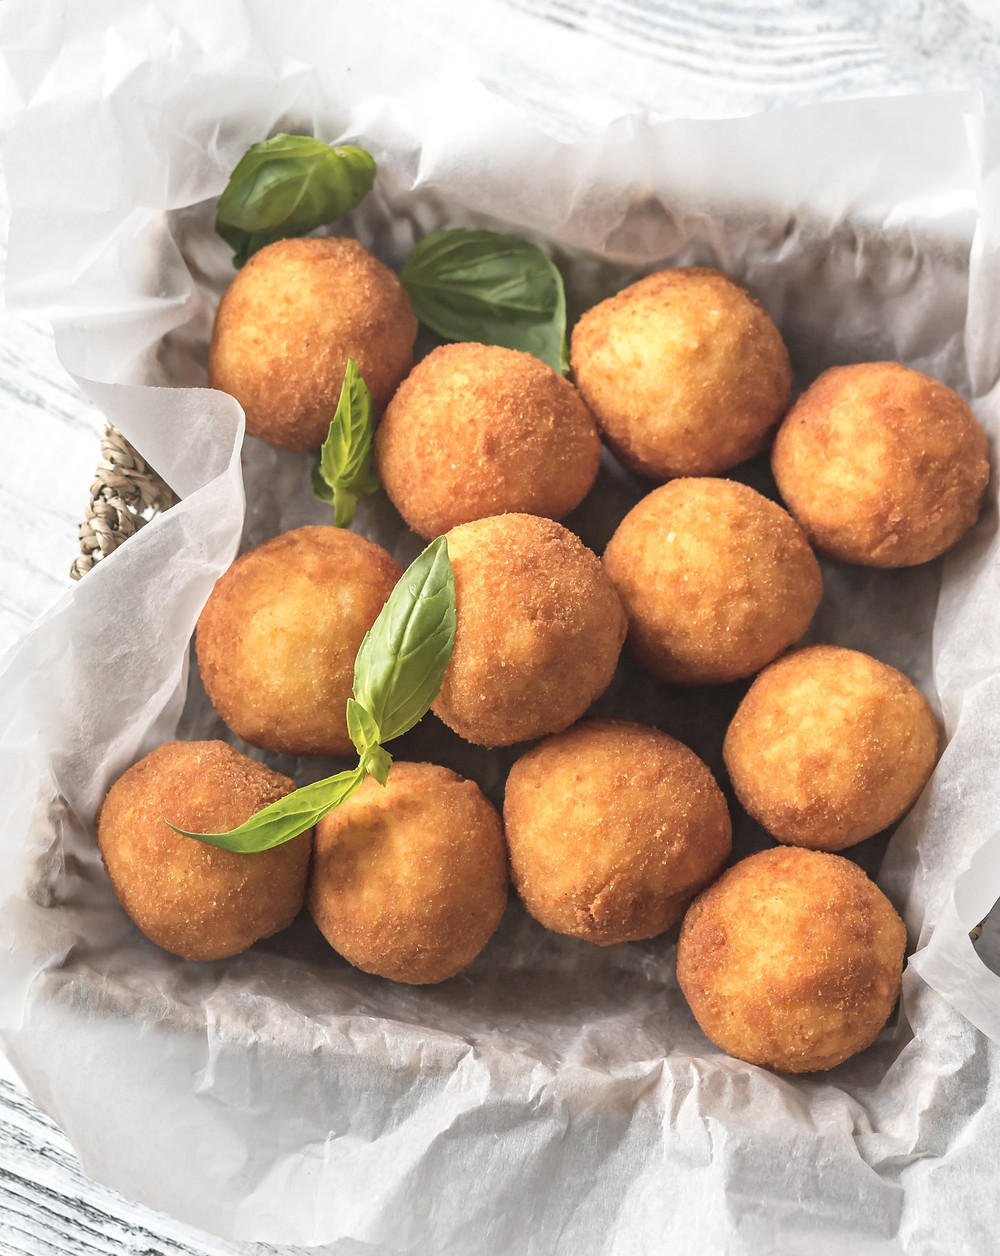 Arancini, rice balls, sicilian rice balls, arancini sicilian true recipe, Italian arancini,  arancini recipes pasta journey, how to make the best arancini, crispy italian arancini, Italian rice balls, the best arancini recipe, the best rice balls recipe